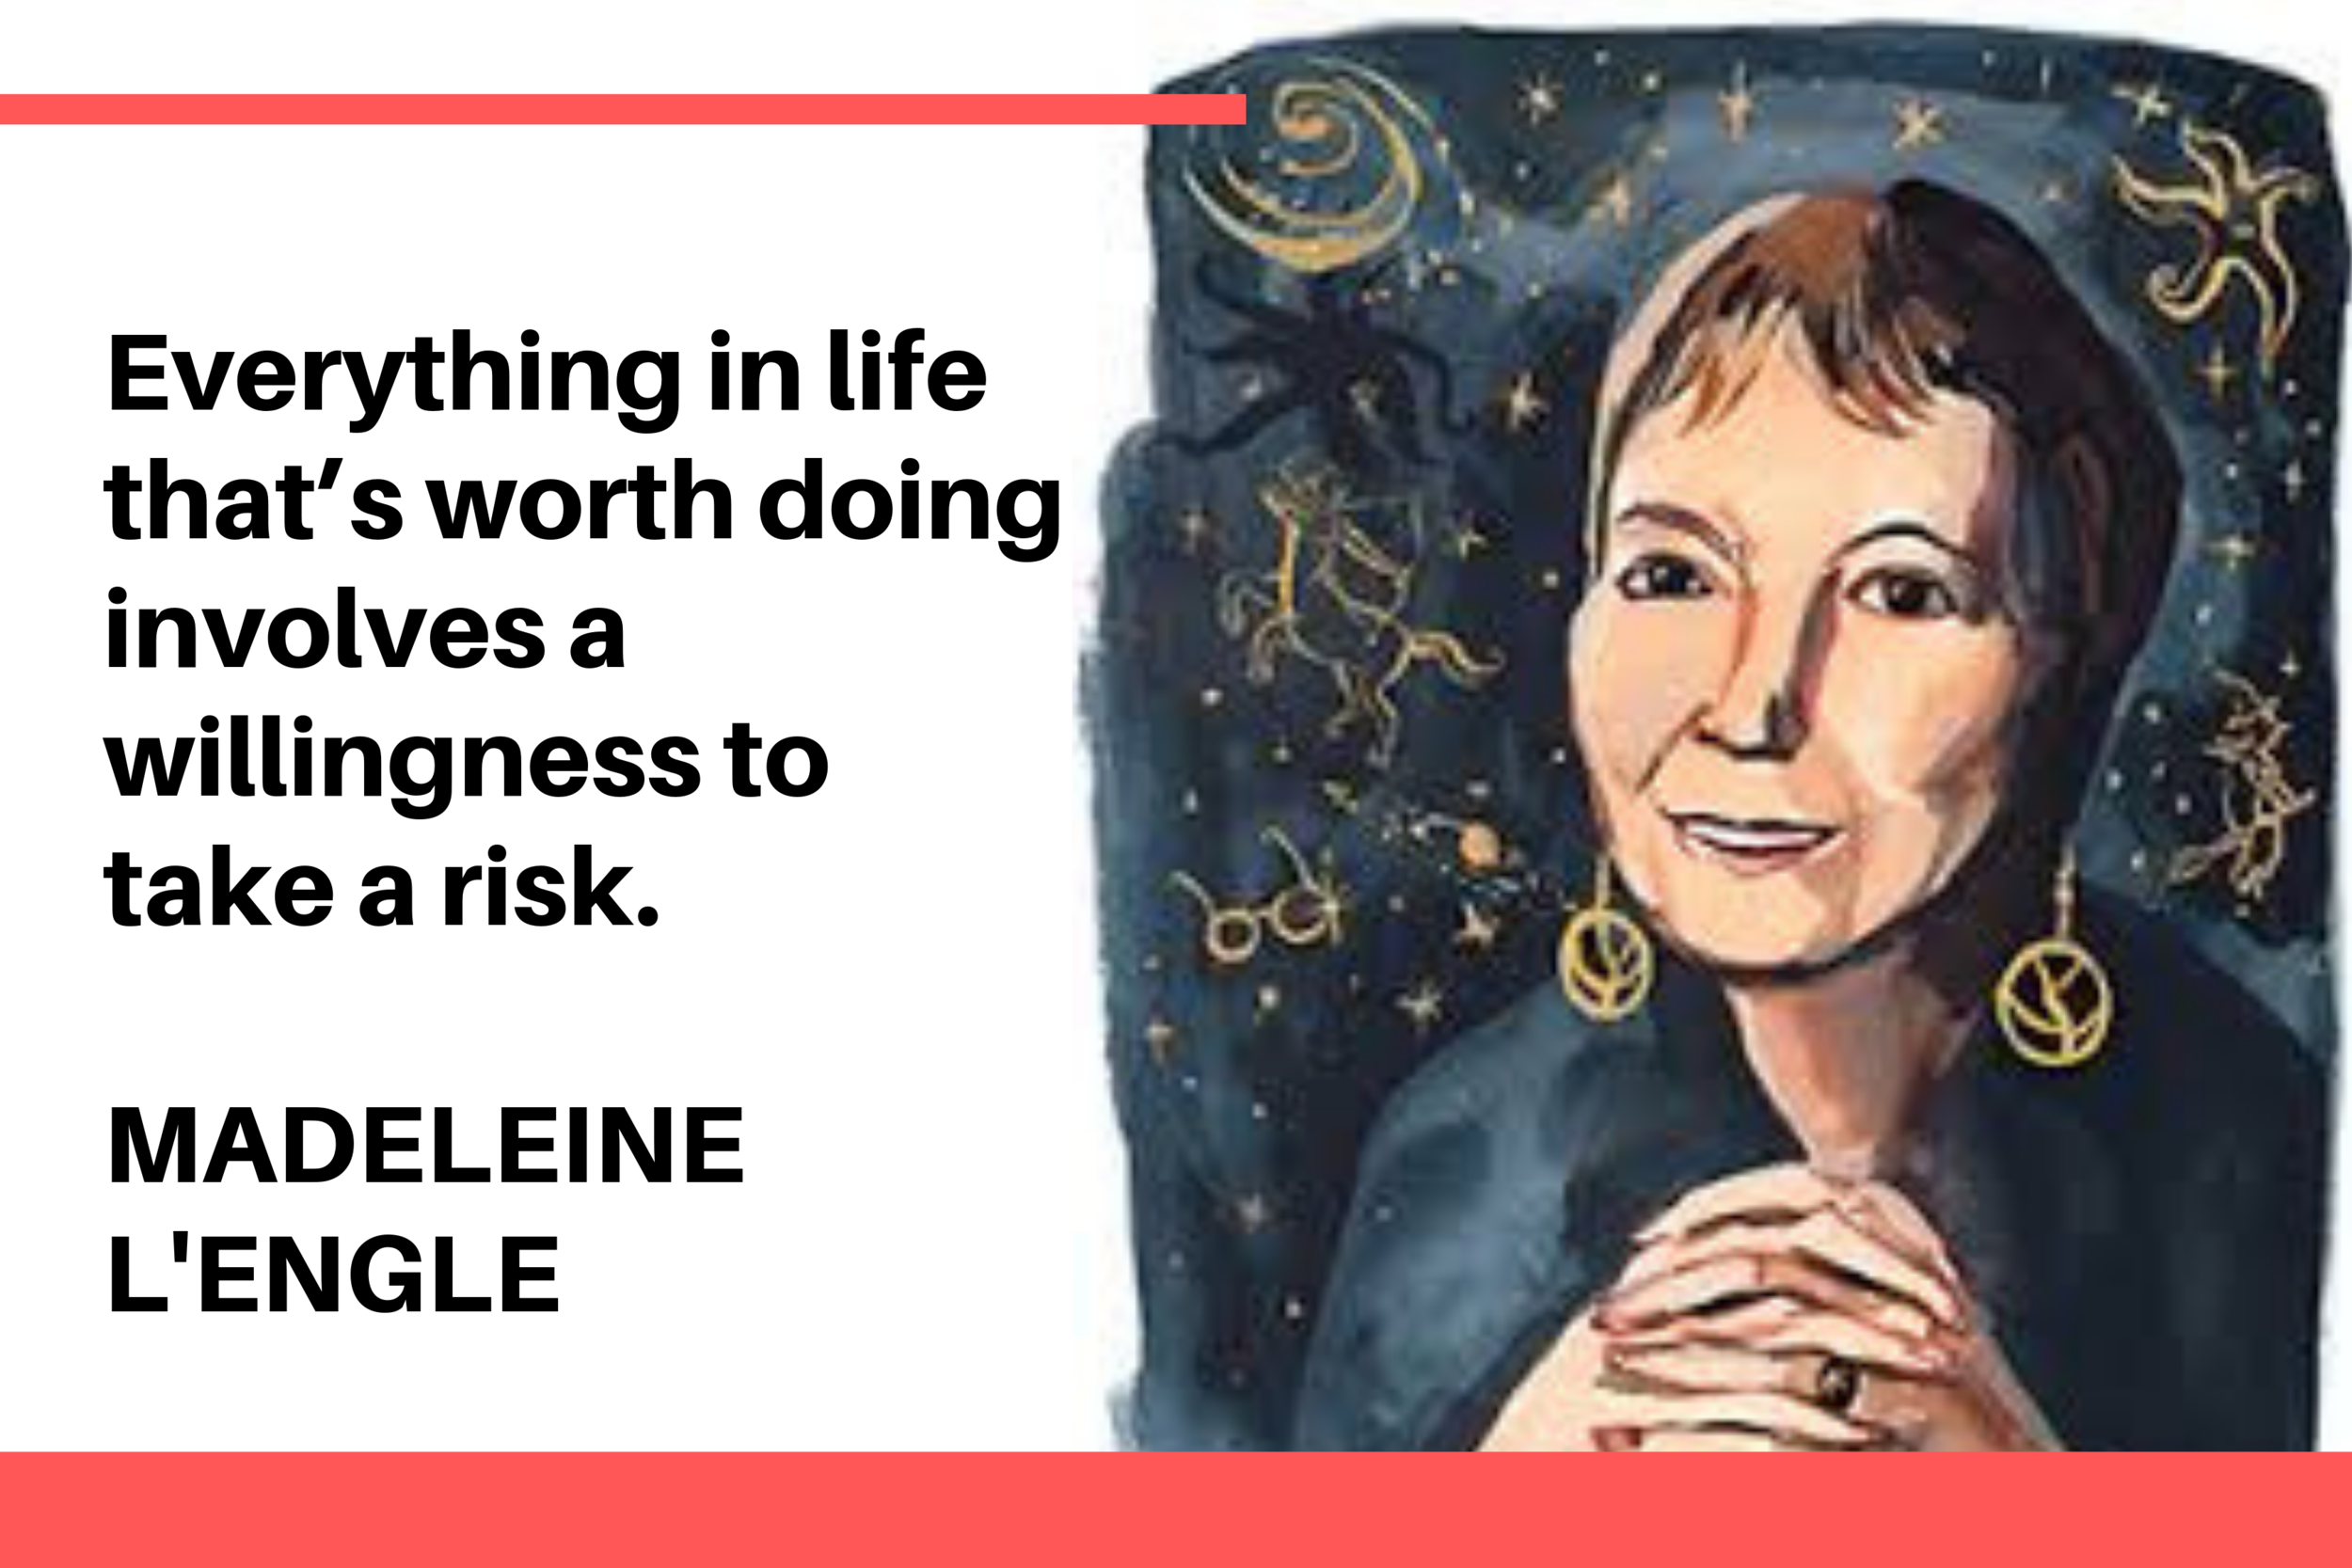 MADELEINE L'ENGLE.png